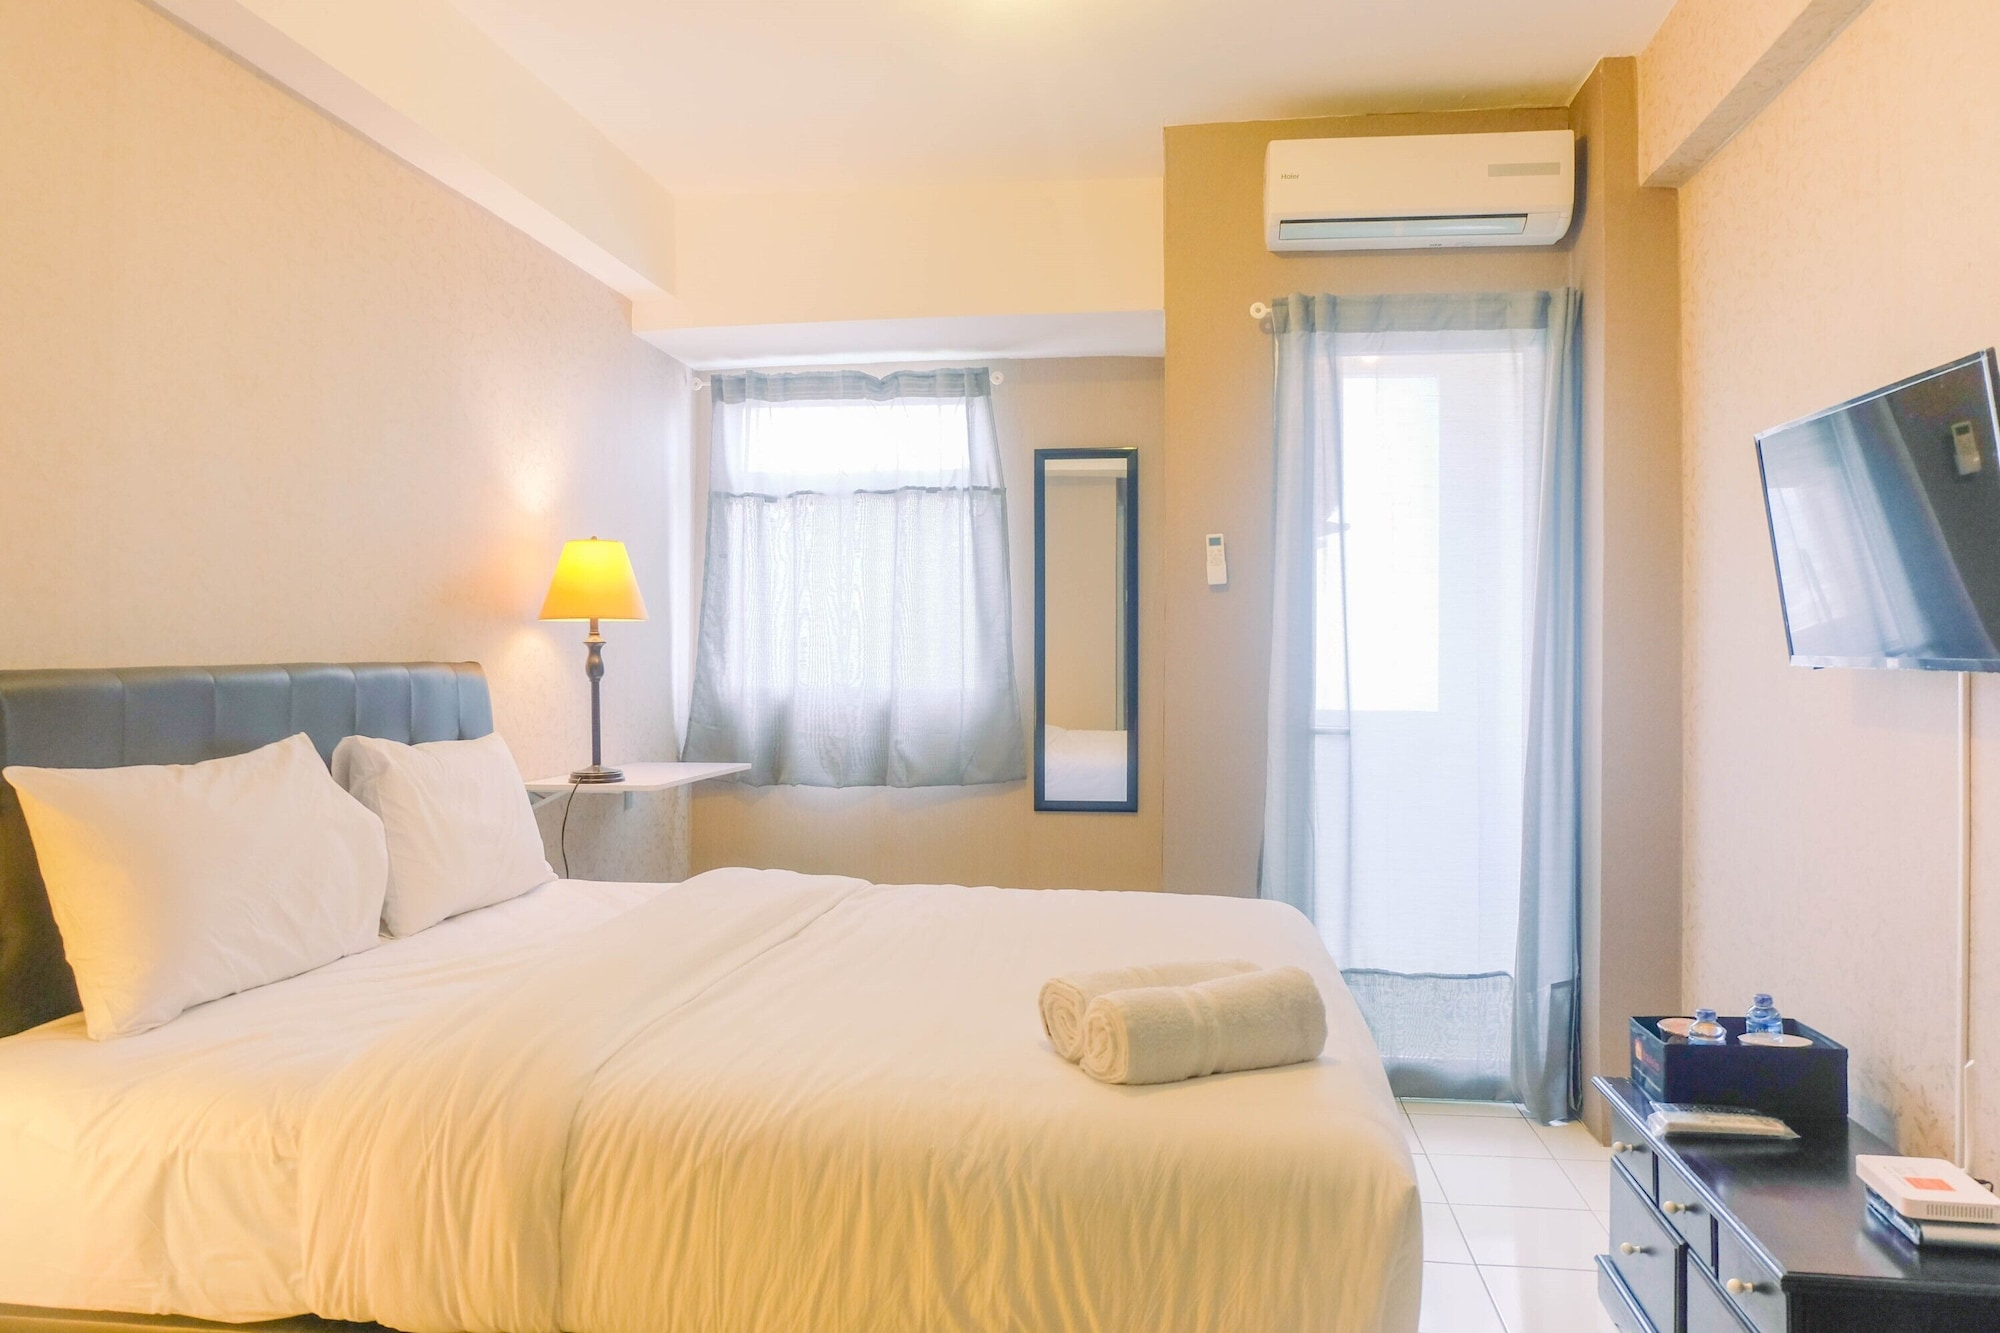 New Furnished Studio Apartment at Gunung Putri Square, Bogor